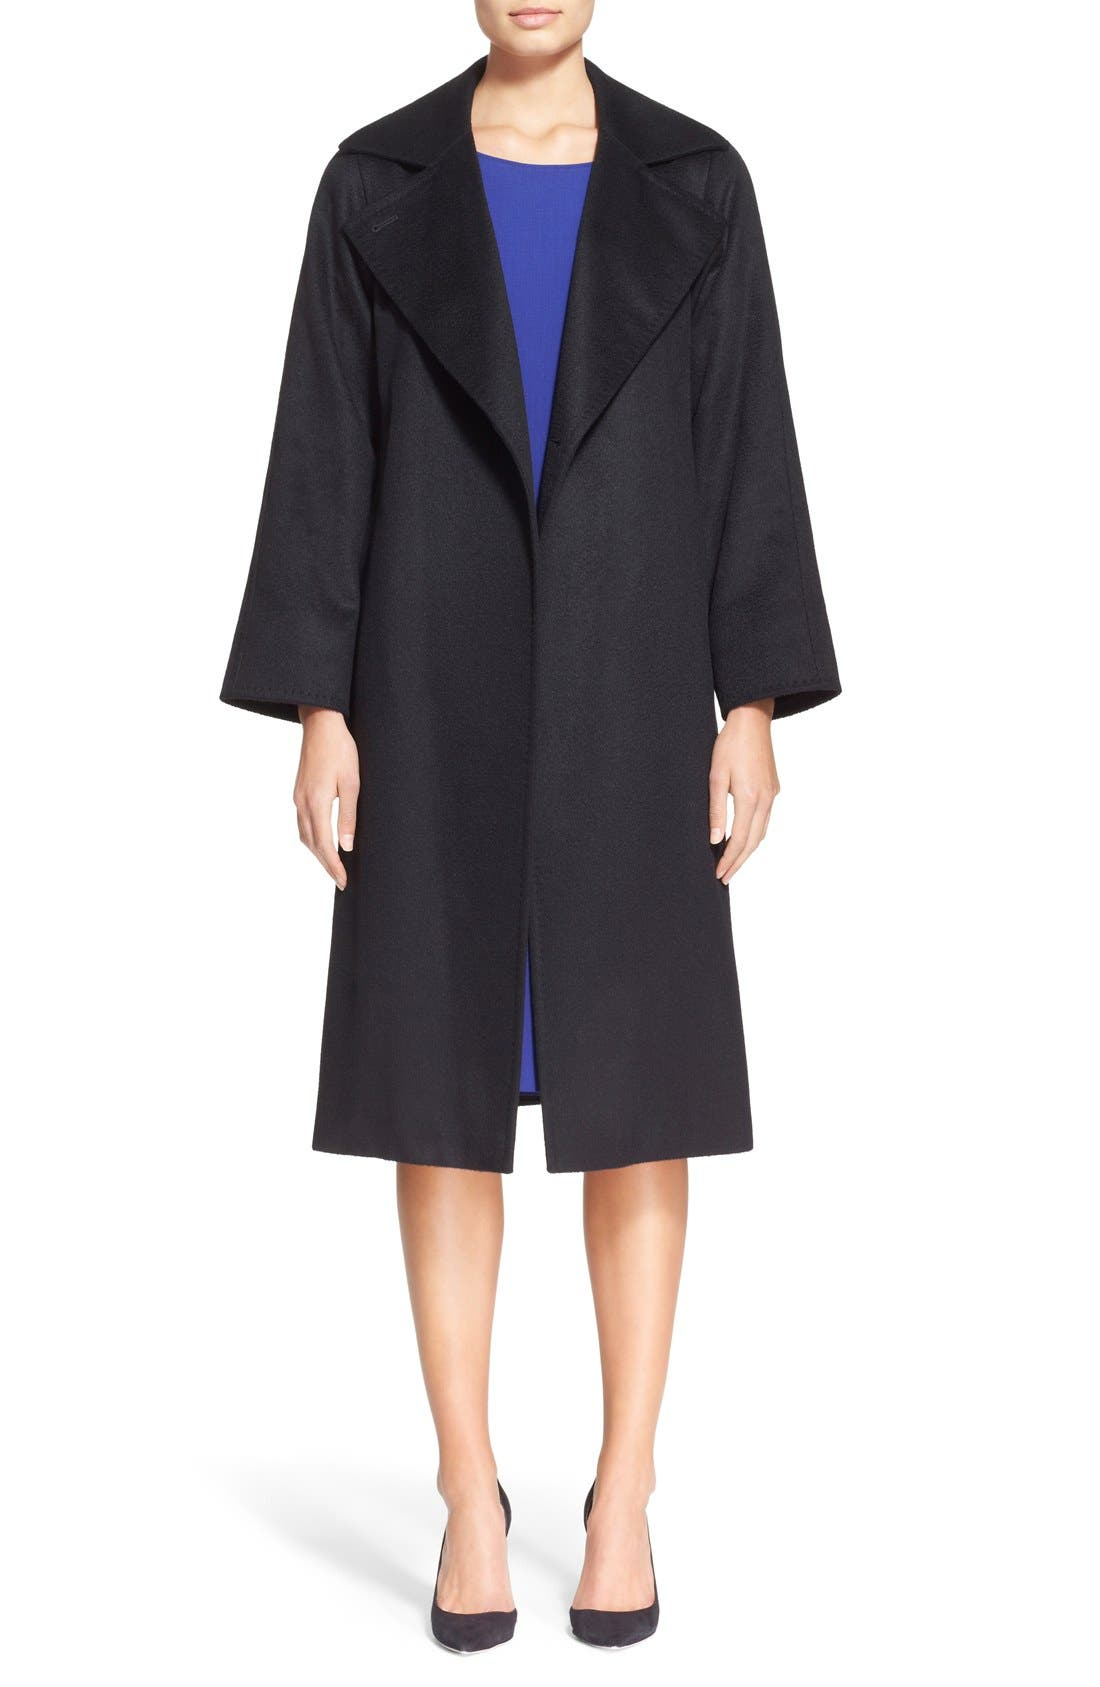 'Manuela' Camel Hair Coat,                             Main thumbnail 1, color,                             BLACK